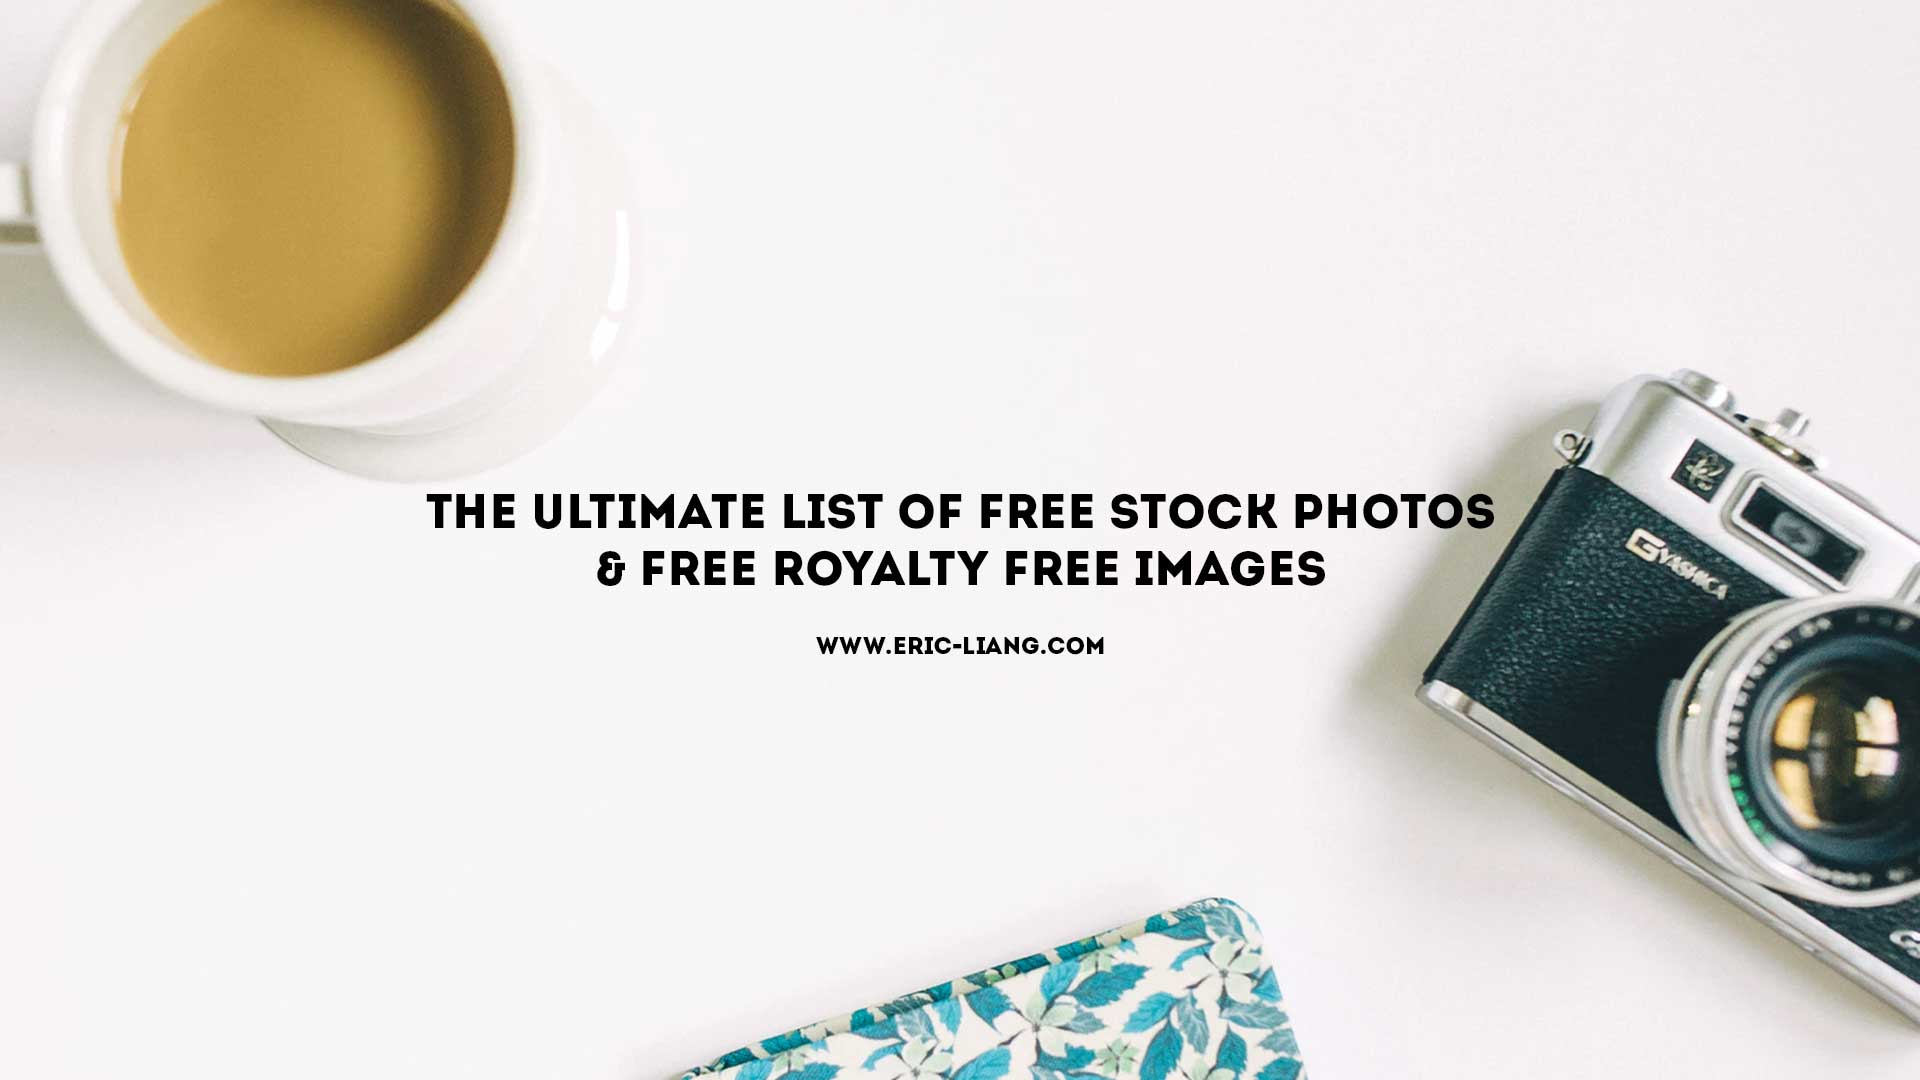 The Ultimate List of Free Stock Photos & Free Royalty Free Images